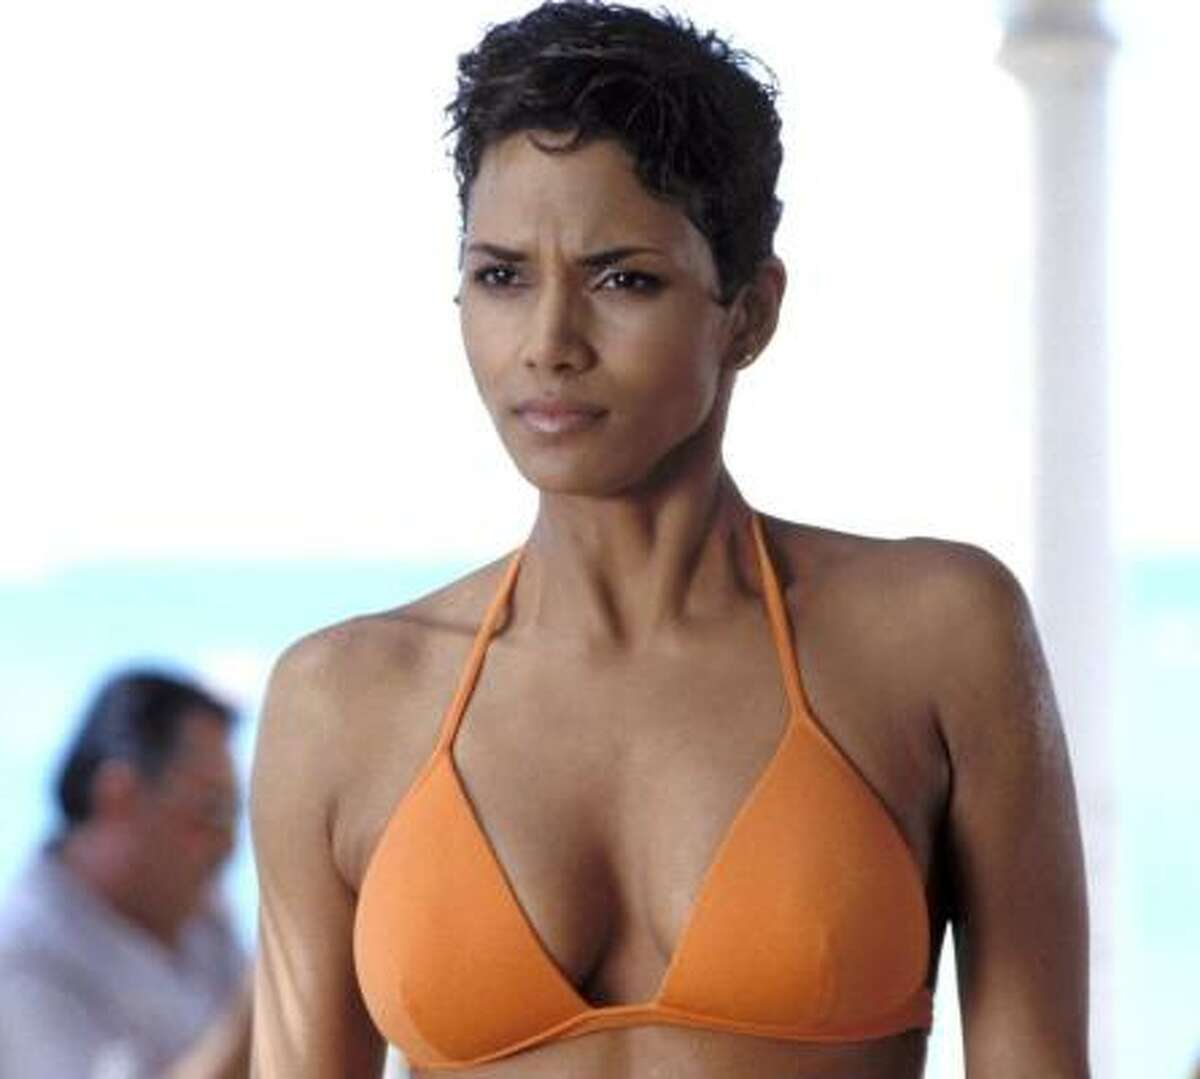 Halle Berry We know she's beautiful. Apparently it's nothing new, as the Oscar-winning actress was on the beauty pageant circuit - Miss Ohio, Miss World, Miss Teen All-American, Miss Ohio. She was first runner-up in the Miss USA pageant in 1986.